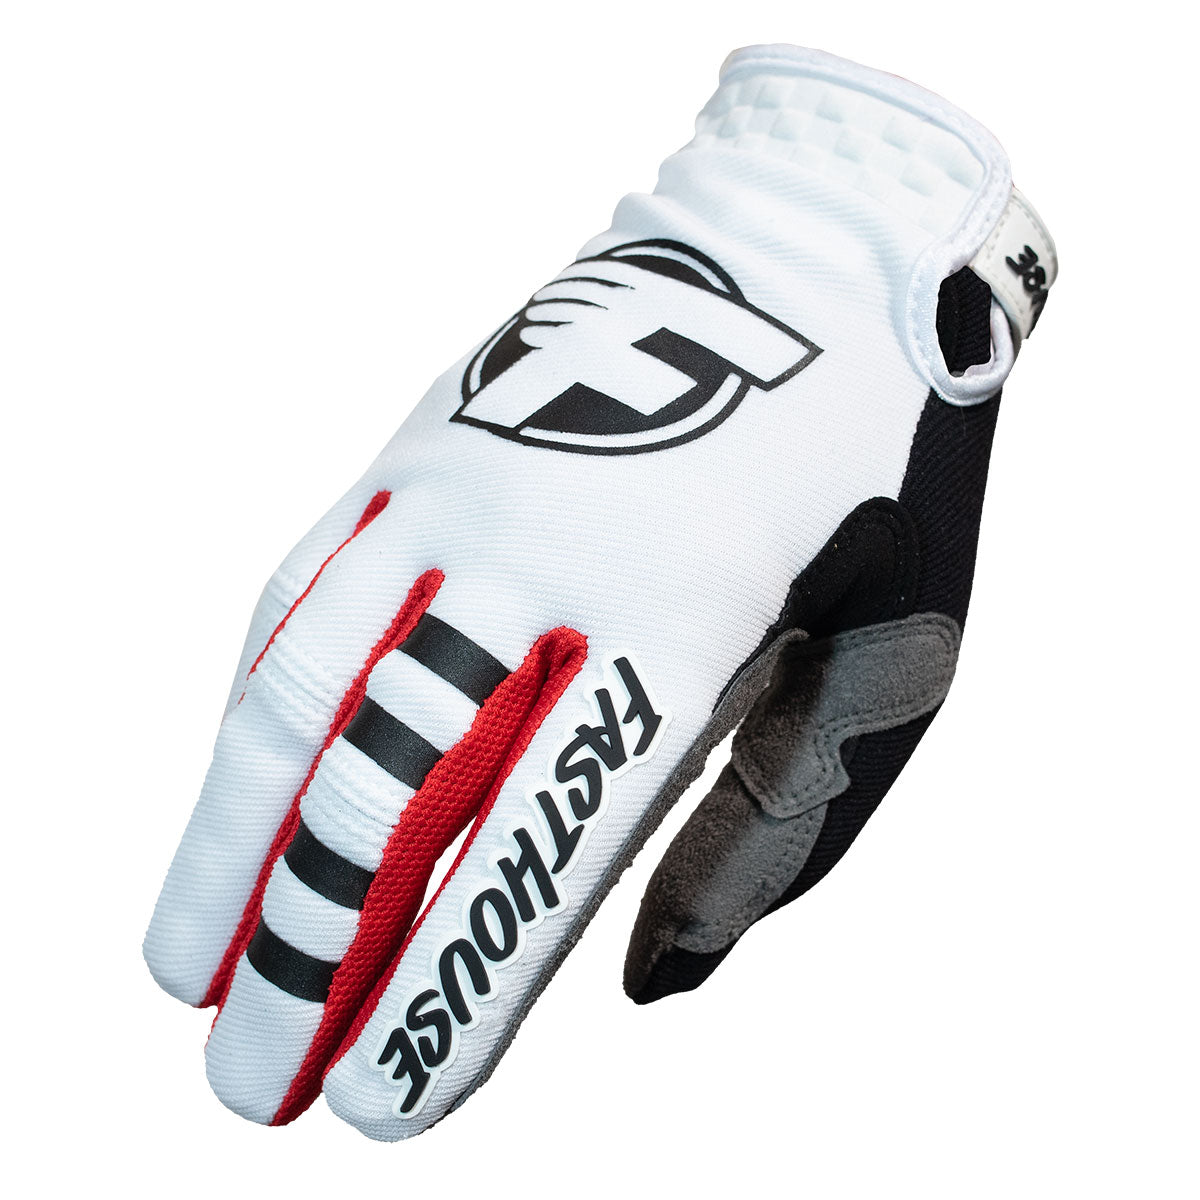 Howler Glove - White/Black